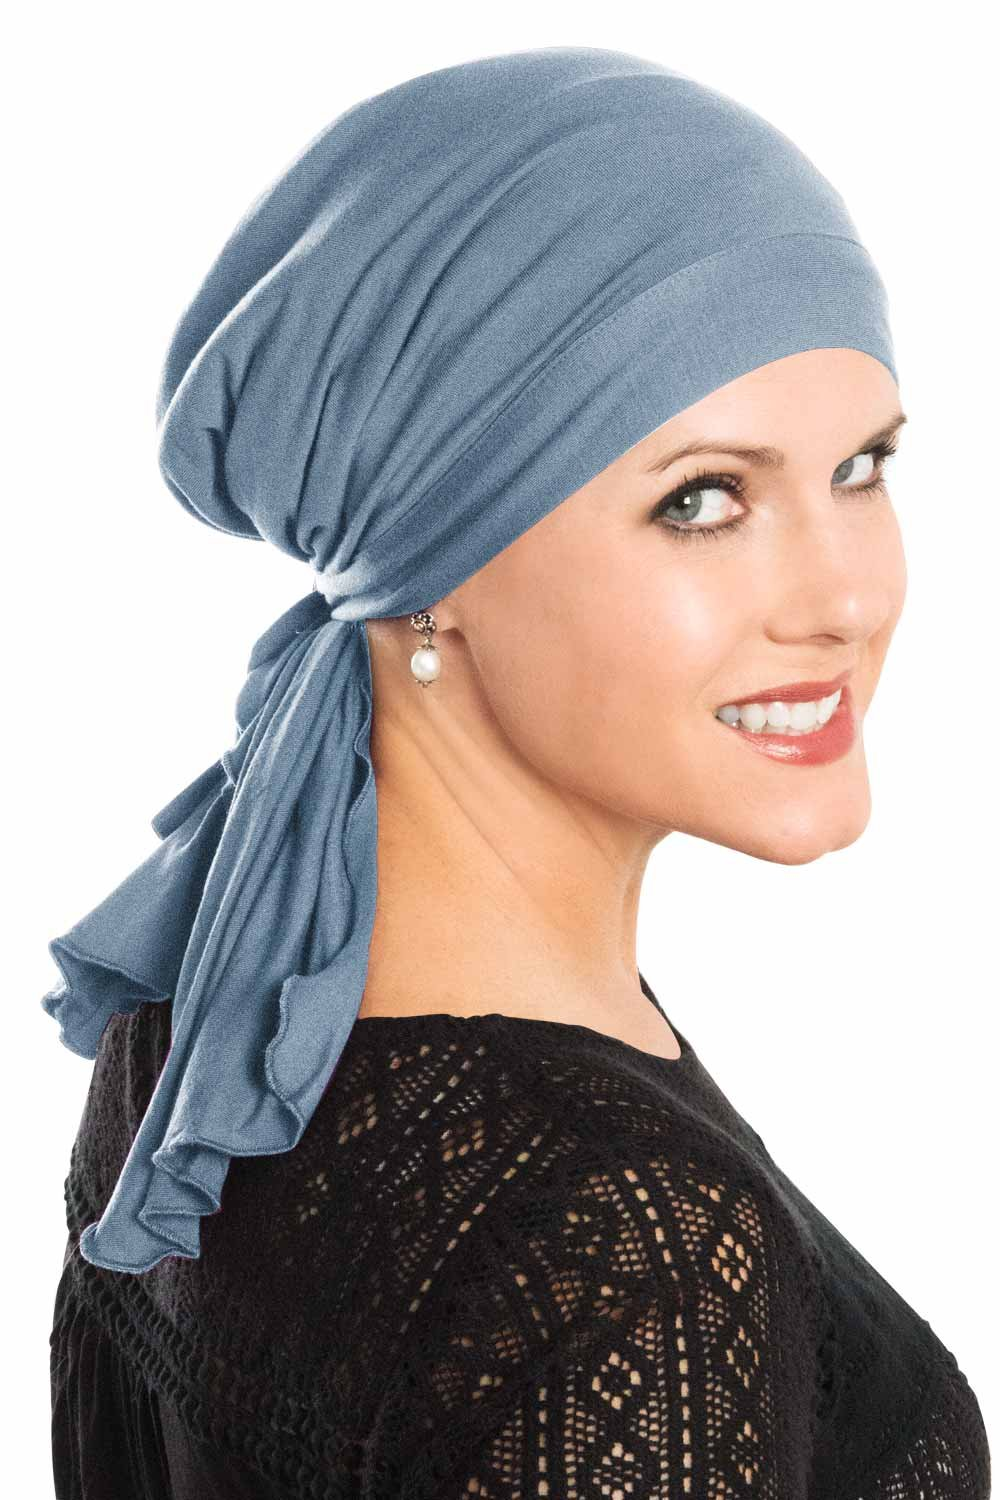 Cardani So Simple Scarf - Pre Tied Head Scarf for Women in Soft Bamboo - Cancer & Chemo Patients Luxury Bamboo - Denim